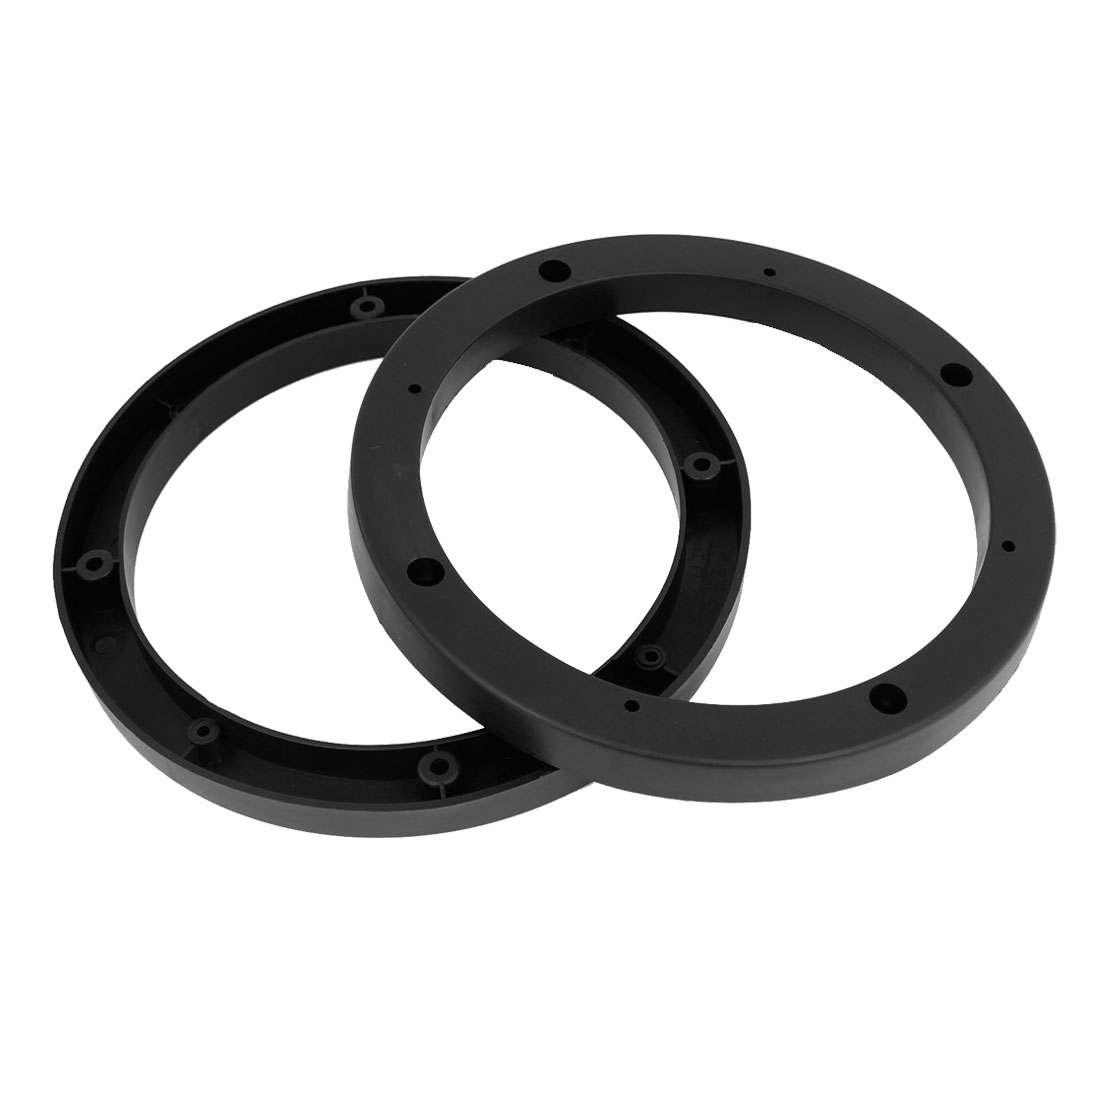 "2 Pcs 7"" Dia Black Plastic Speaker Spacers Extender Ring for Car"